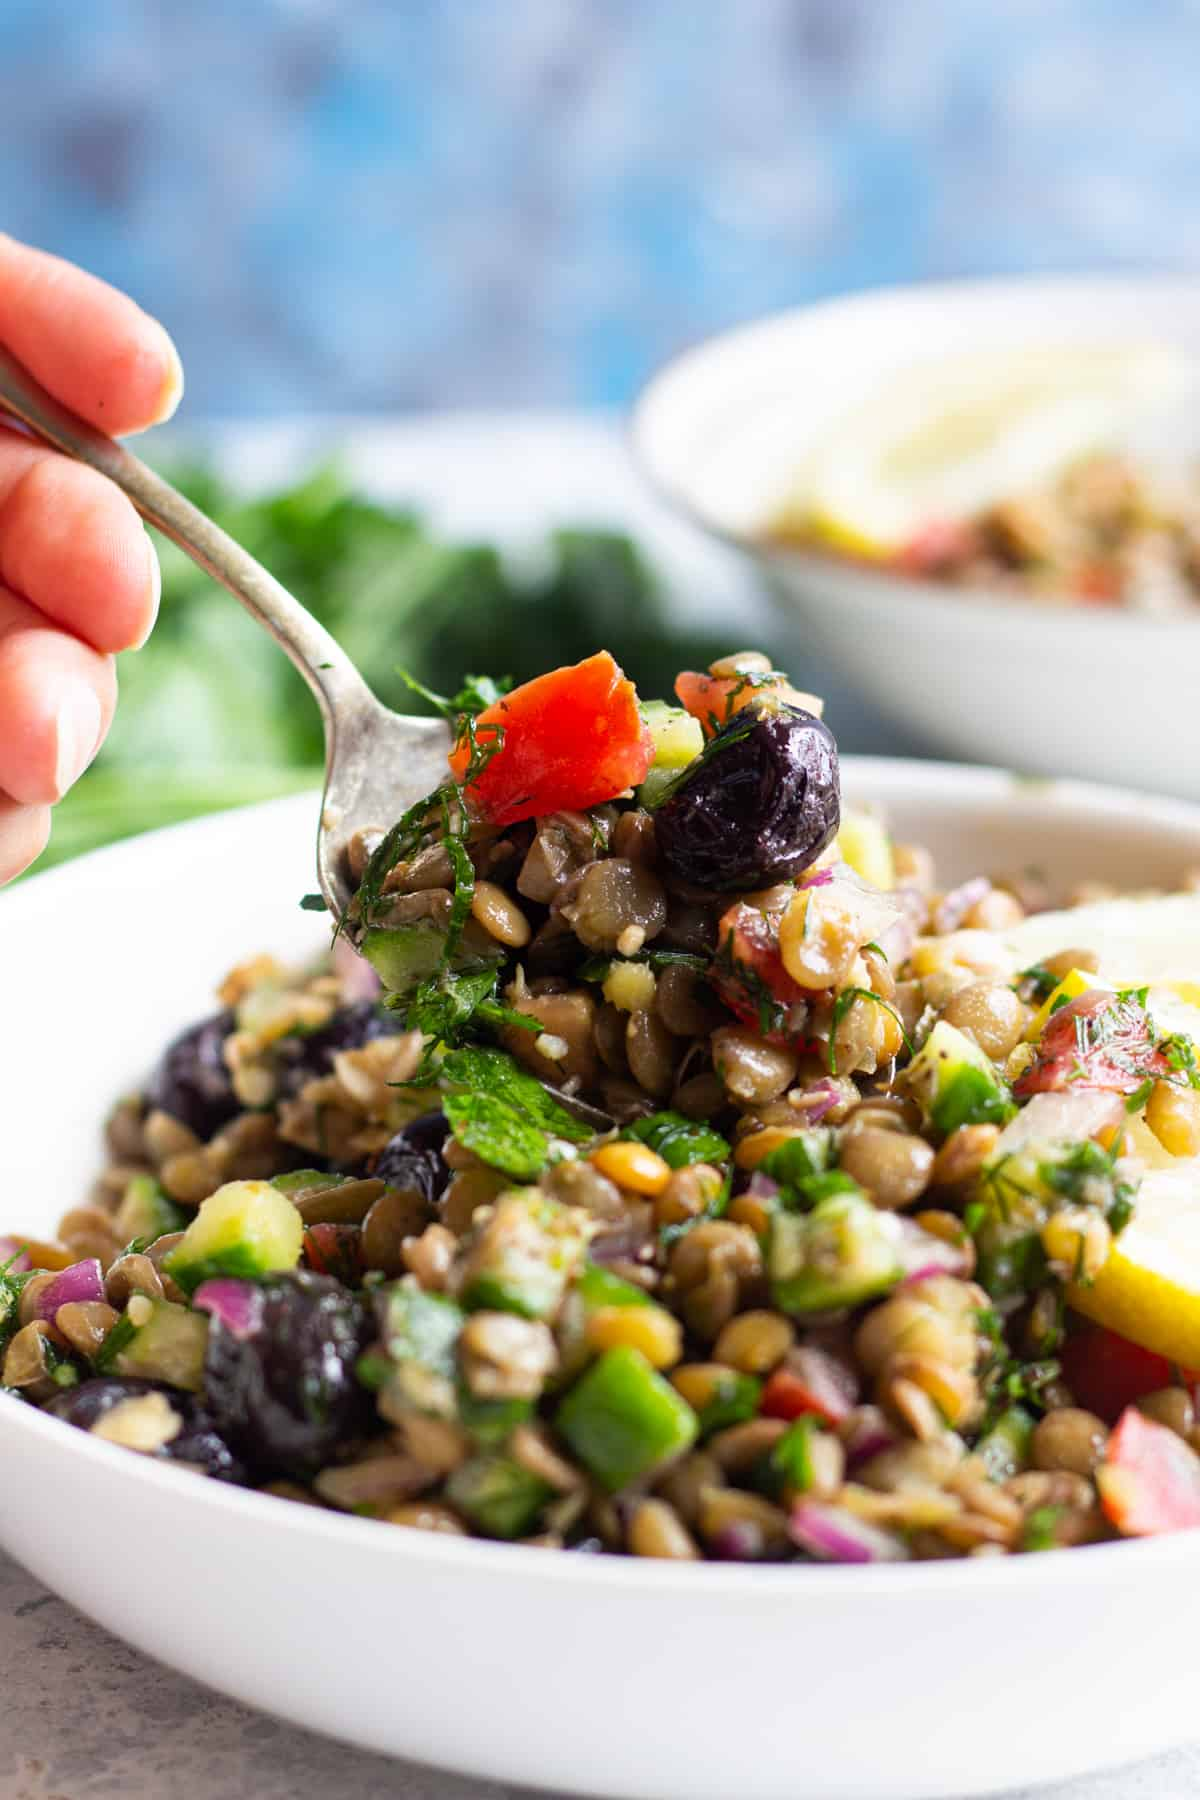 An easy cold salad made with lentils that you can have as a light lunch as well.